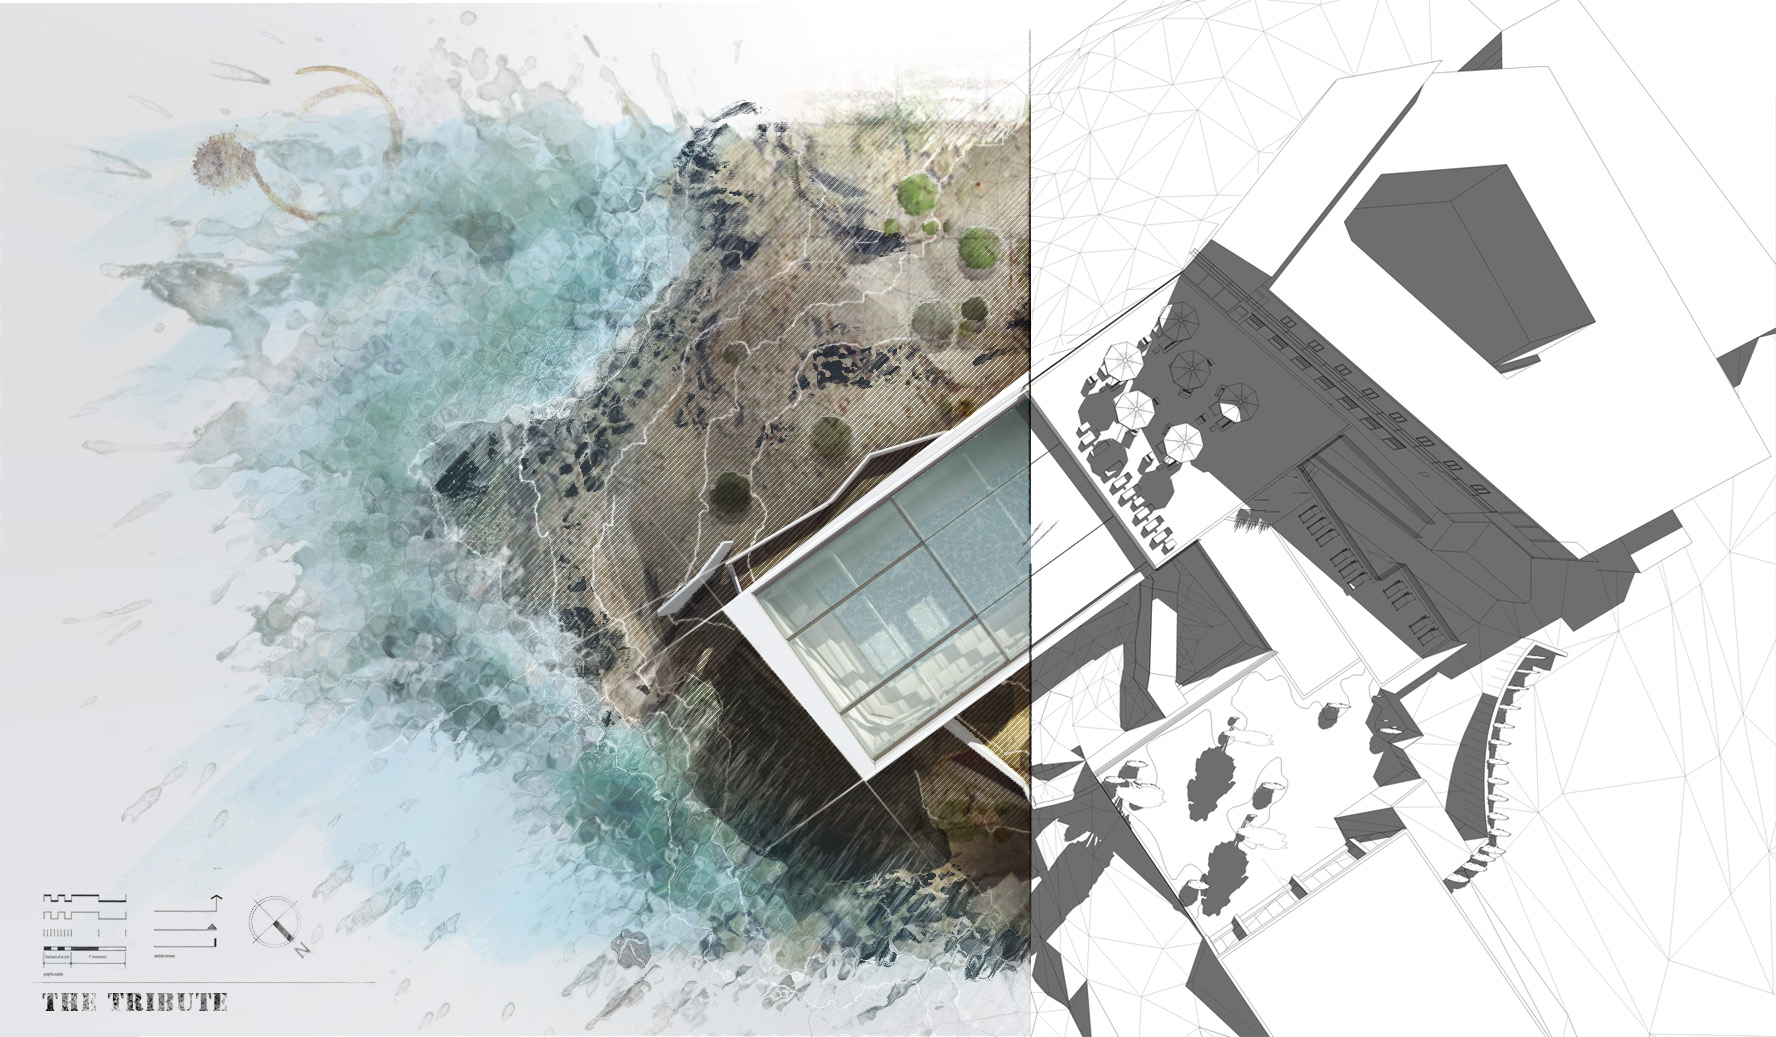 From initial sketchup image to final illustration